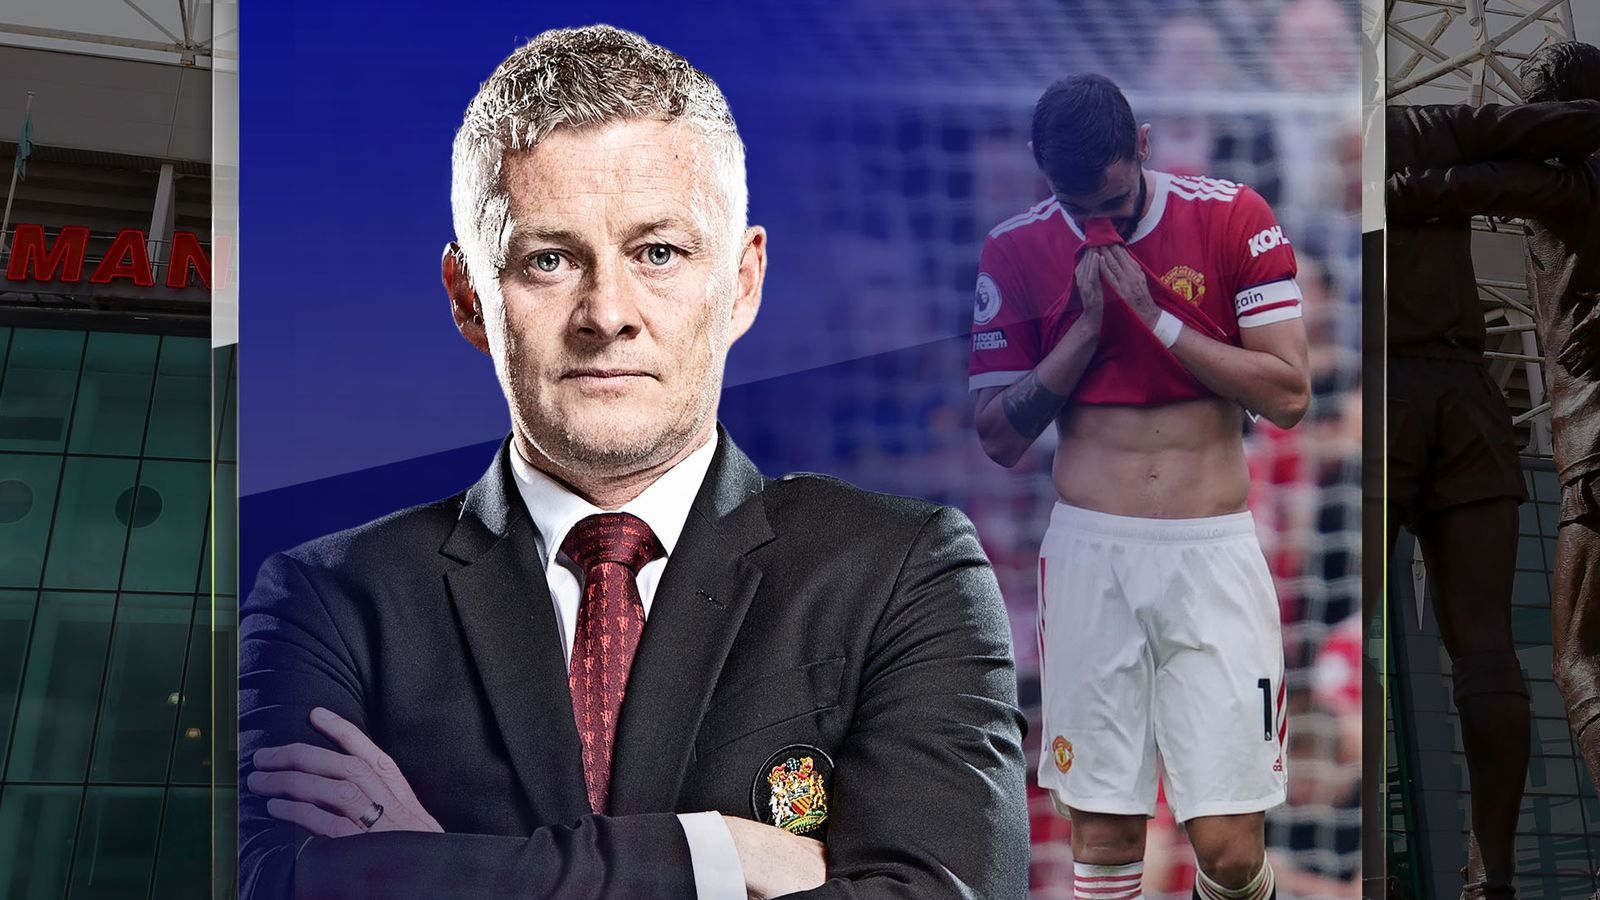 Manchester United: What's going wrong and the problems for Ole Gunnar Solskjaer to solve